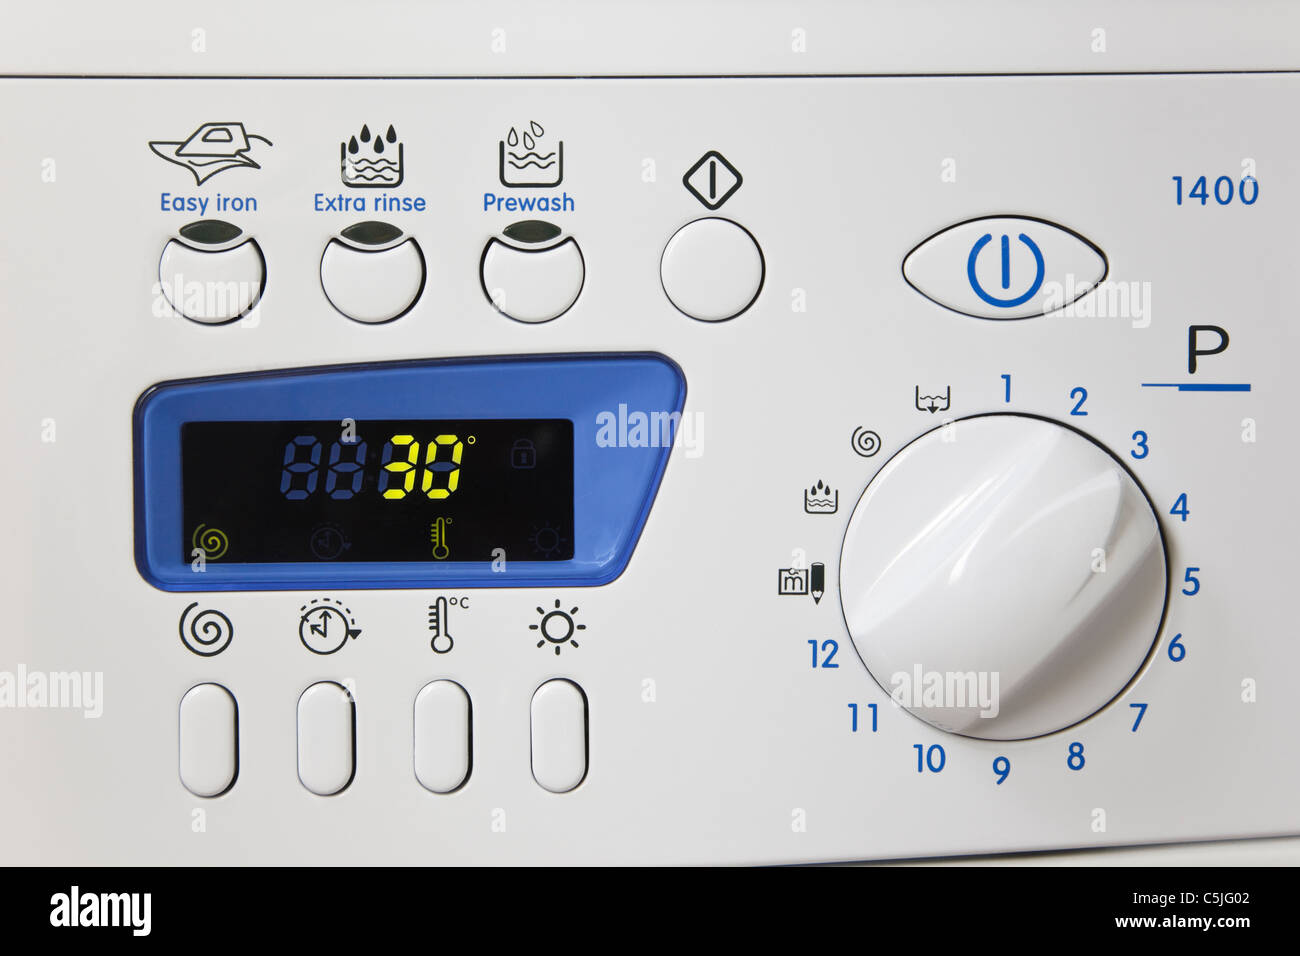 Electric washing machine stock photos electric washing machine automatic washing machine control panel set on an easy care program at a low temperature cool buycottarizona Choice Image